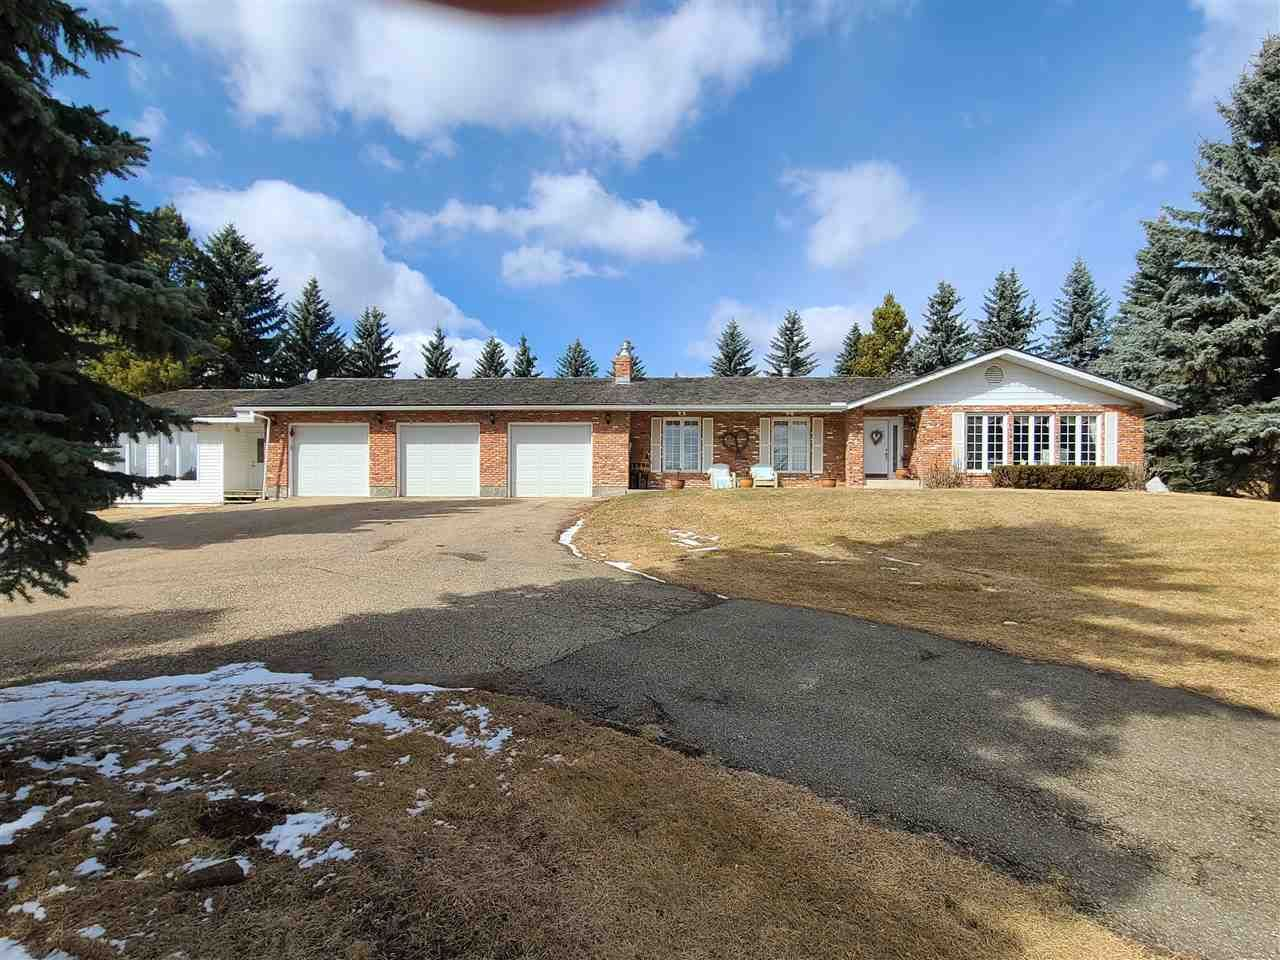 Main Photo: 6 53420 RGE RD 274: Rural Parkland County House for sale : MLS®# E4235414